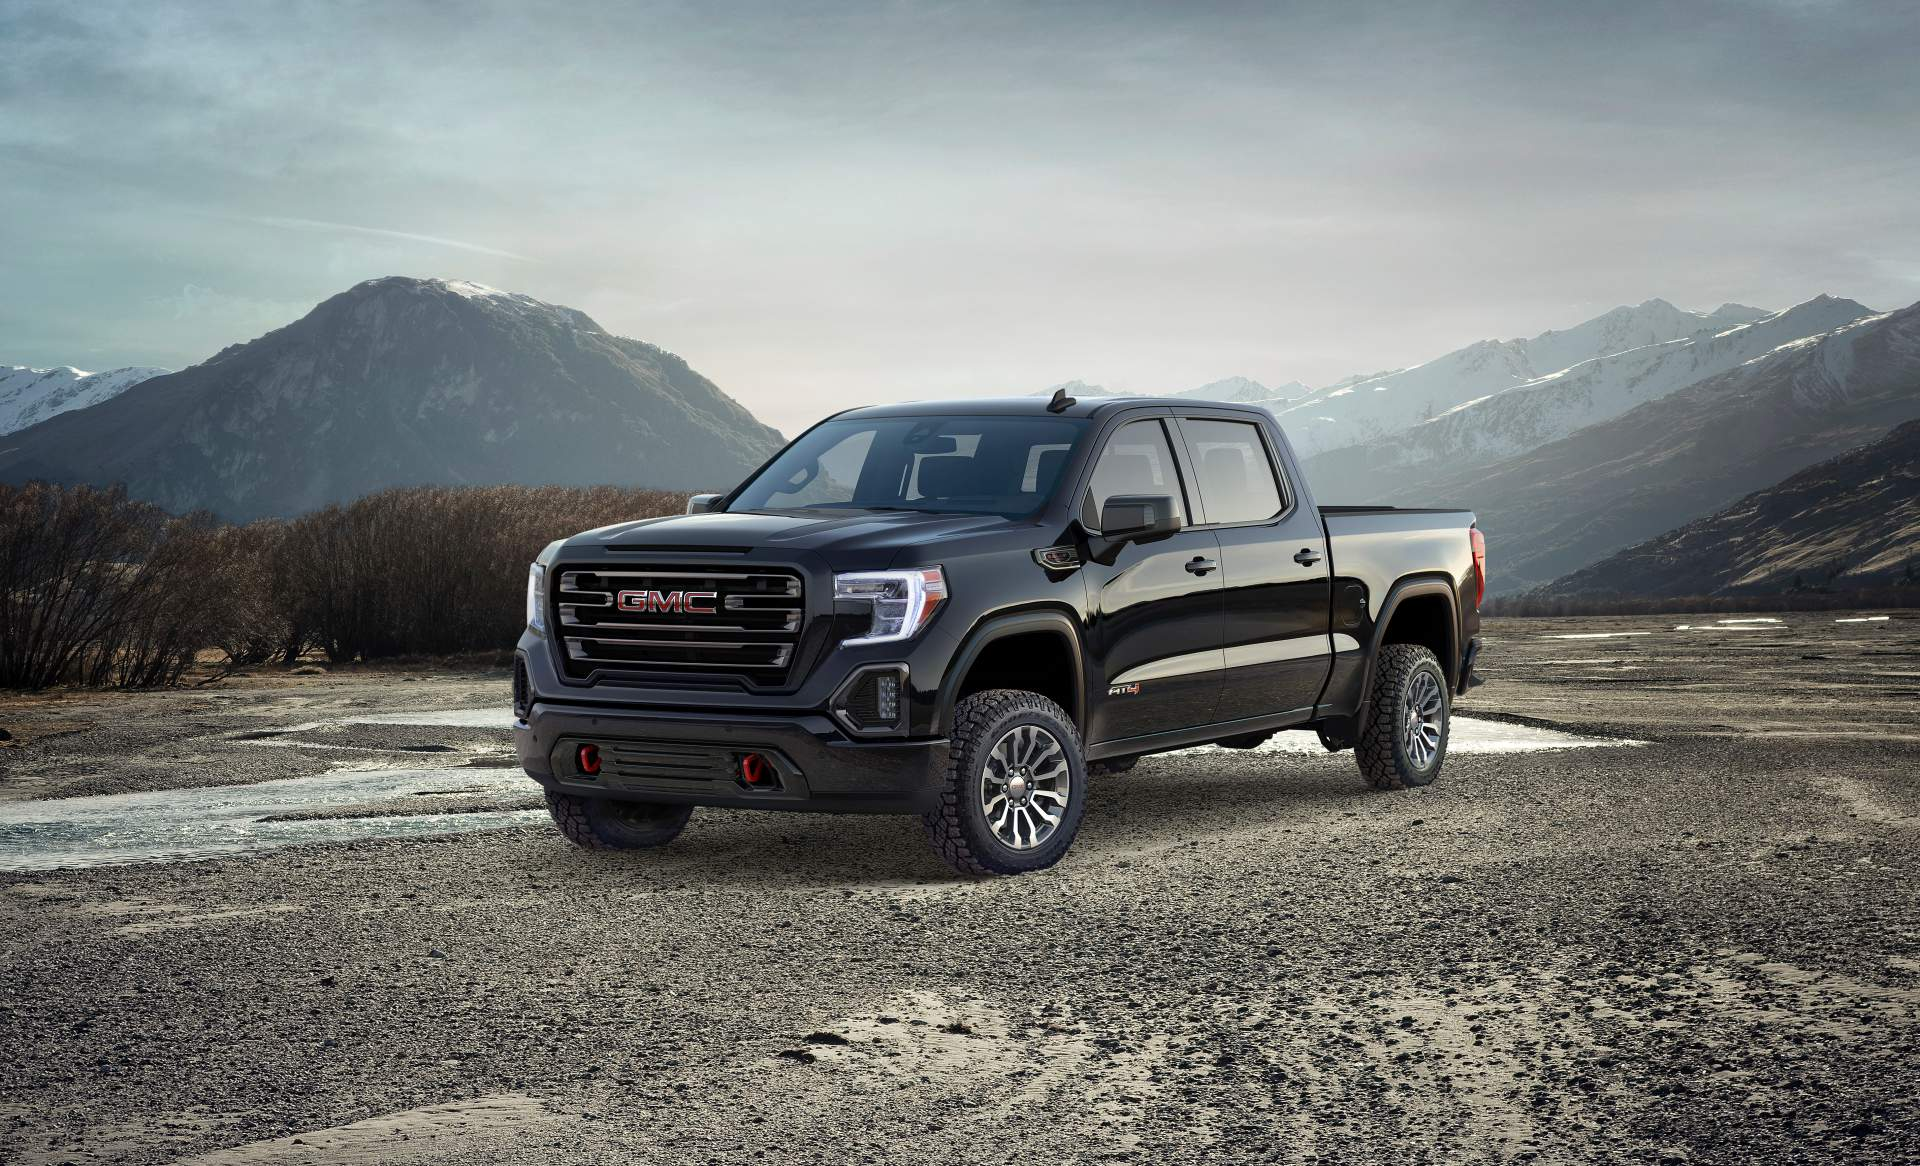 Gmc Levels Up 2019 Sierra At4 With Off Road Performance